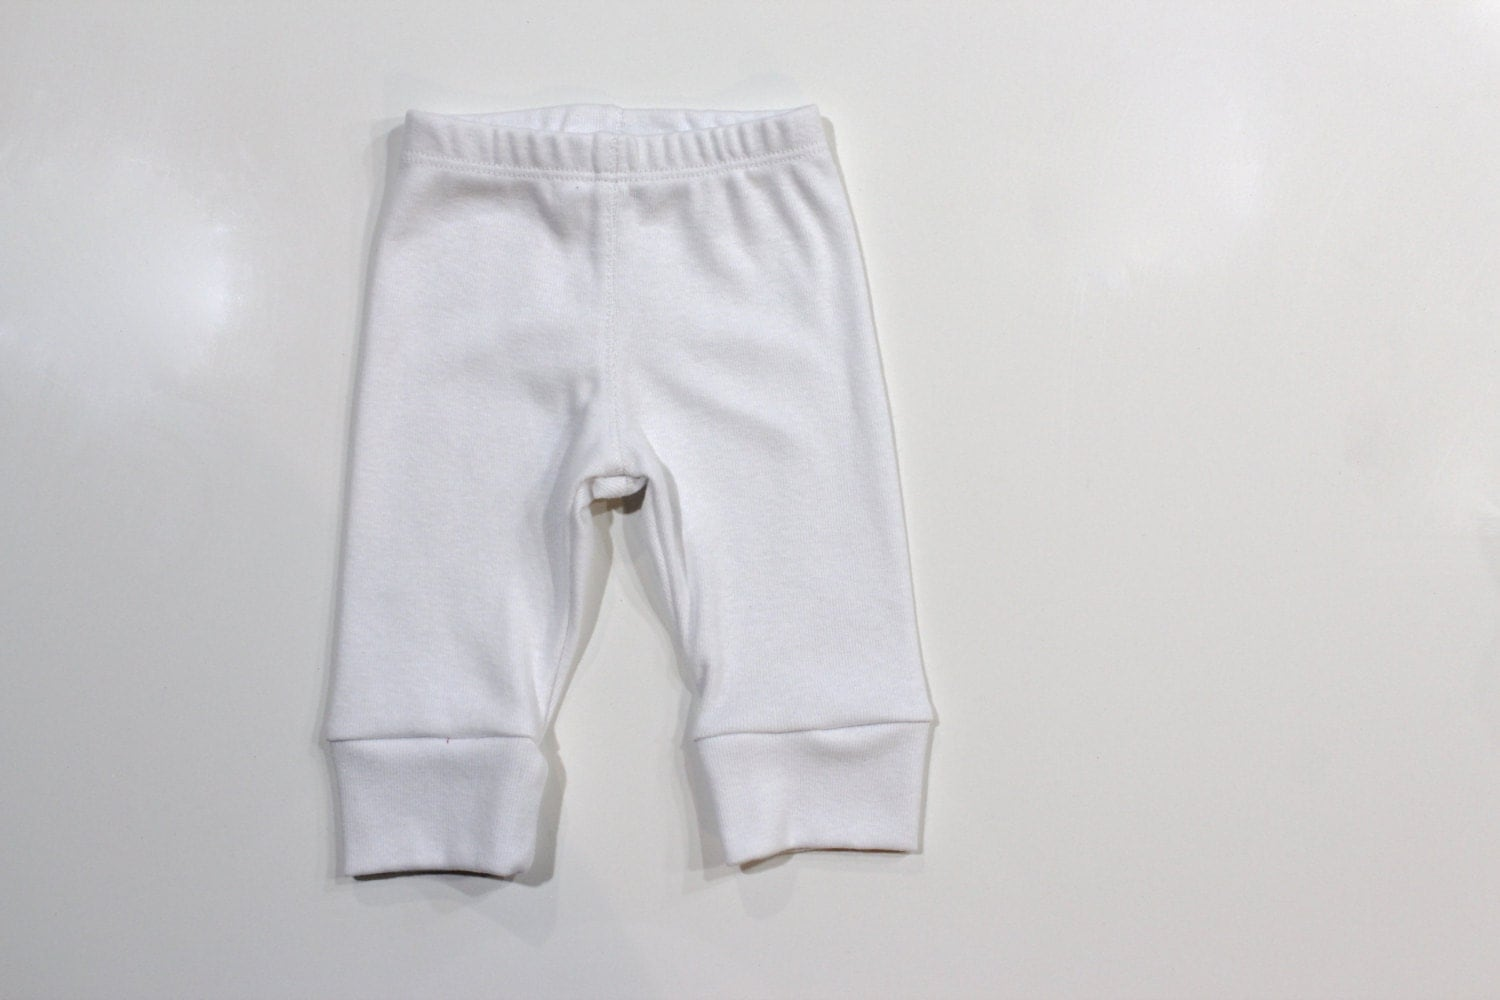 Find great deals on eBay for Baby Boy White Pants in Baby Boys' Bottoms (Newborn-5T). Shop with confidence.